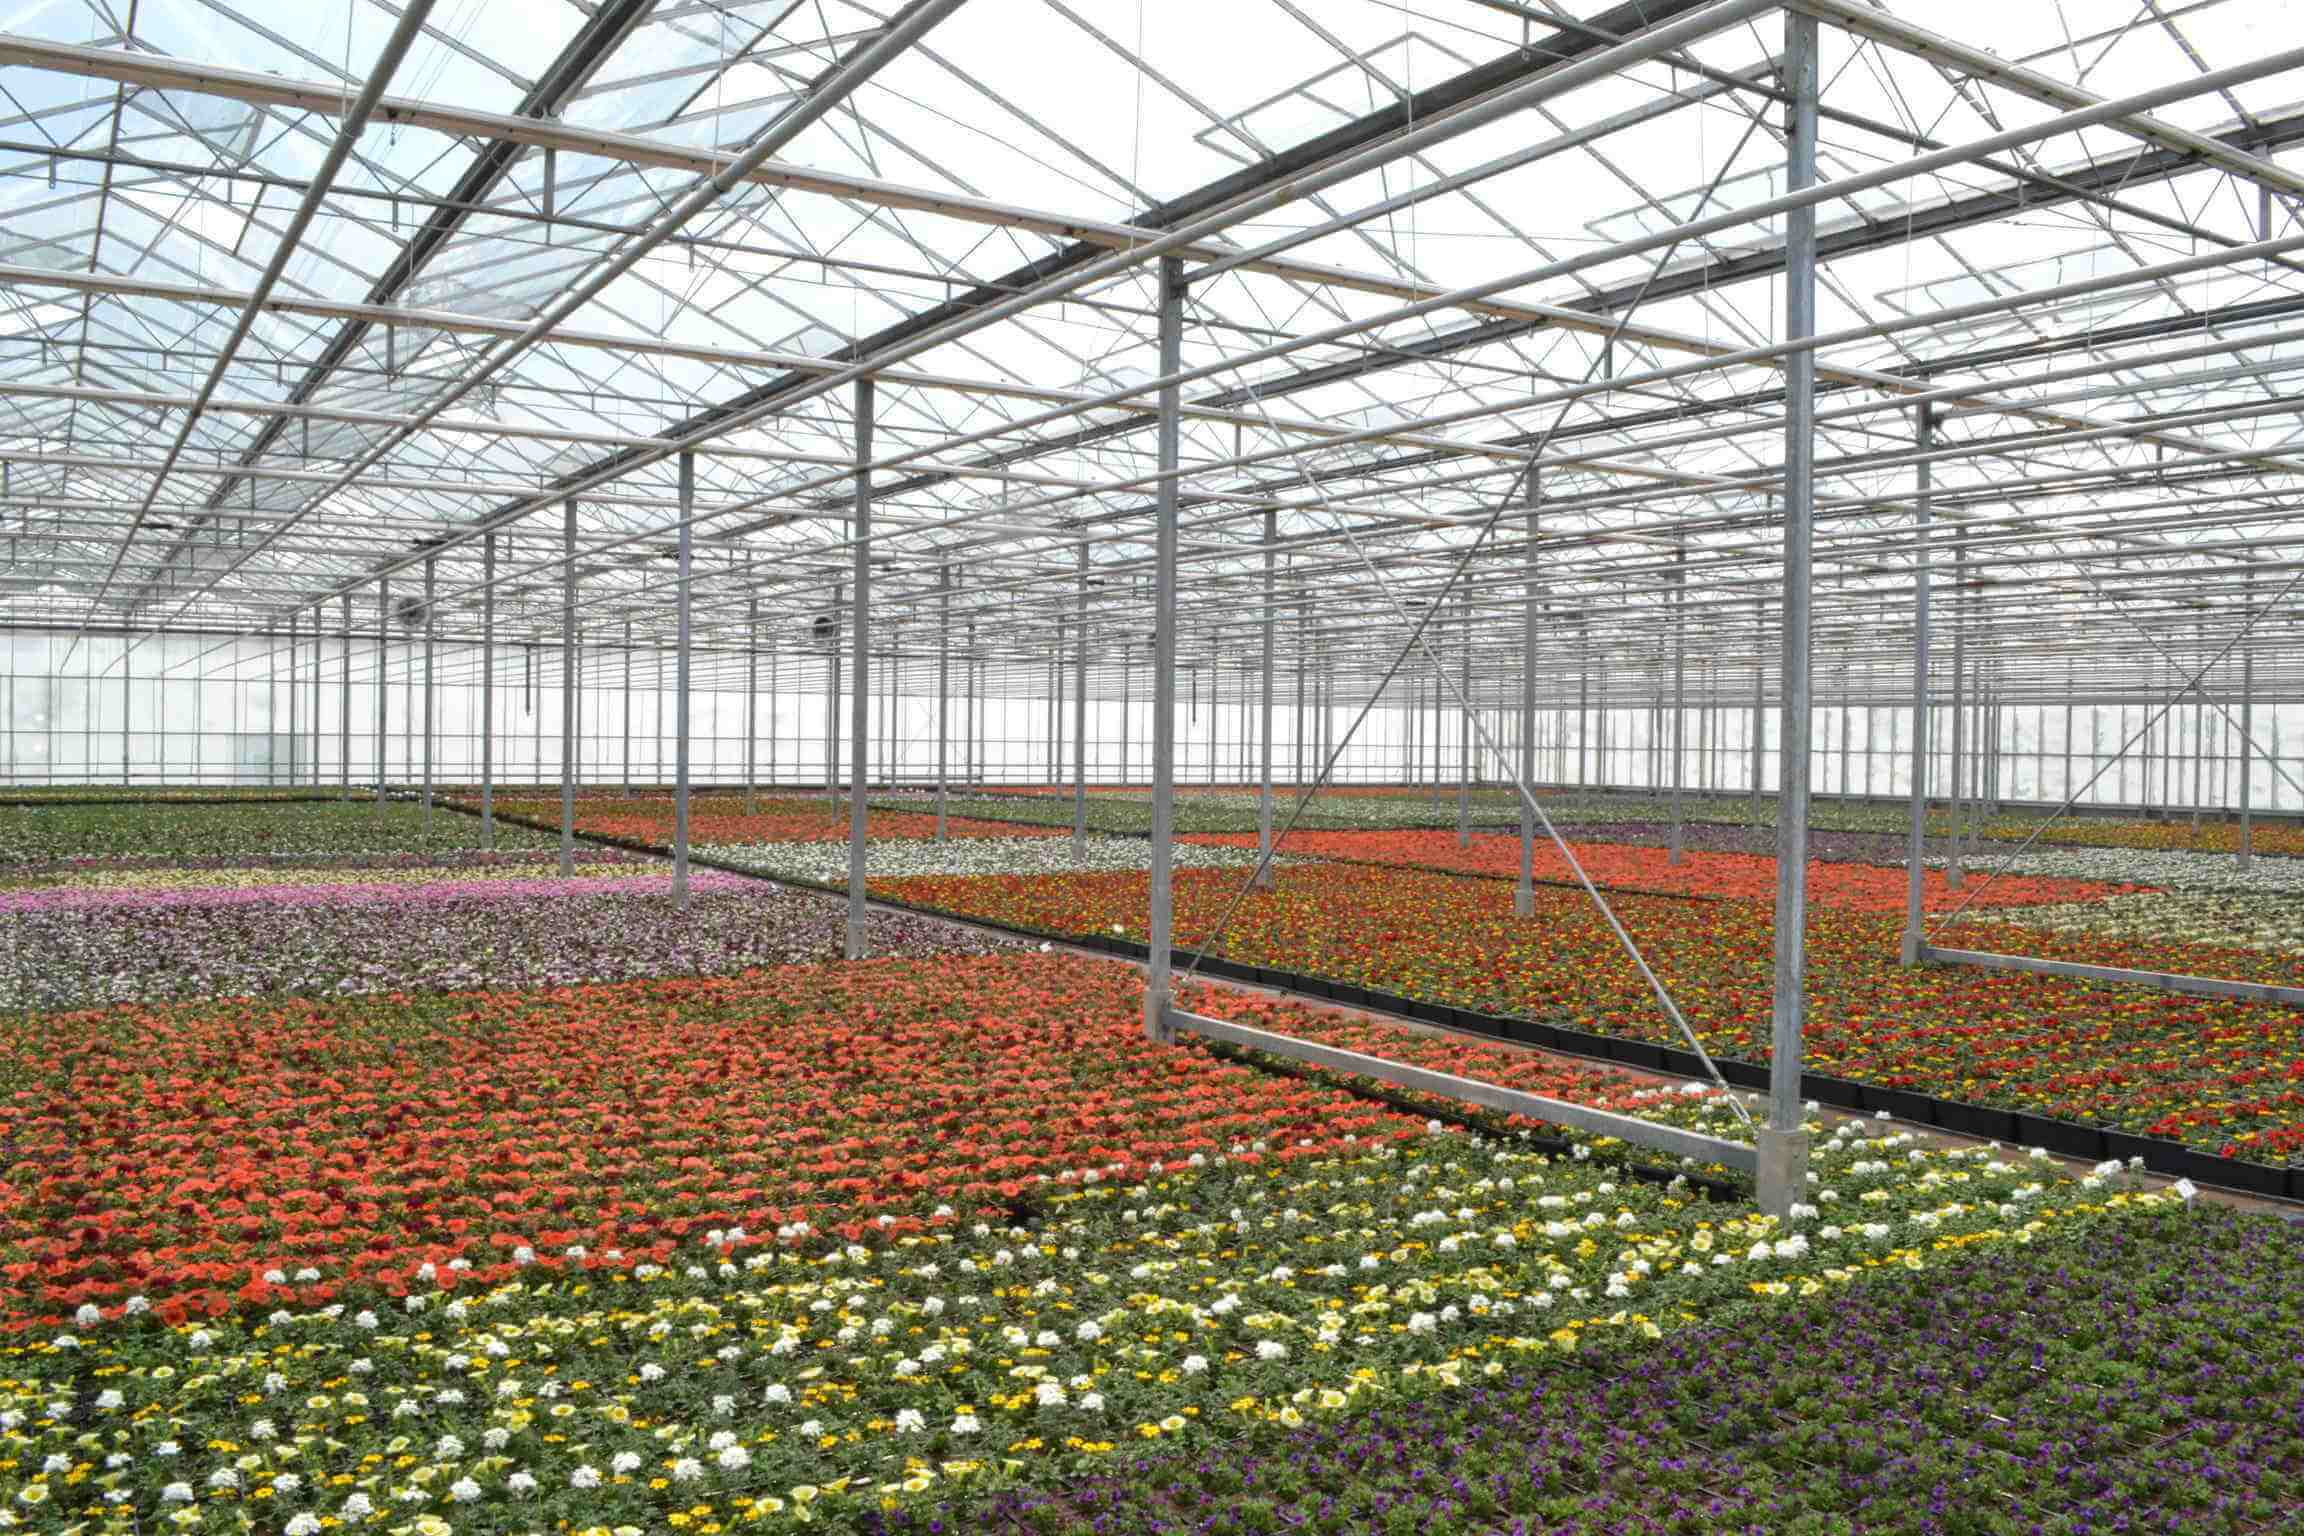 Glasshouse Interior w/flowers